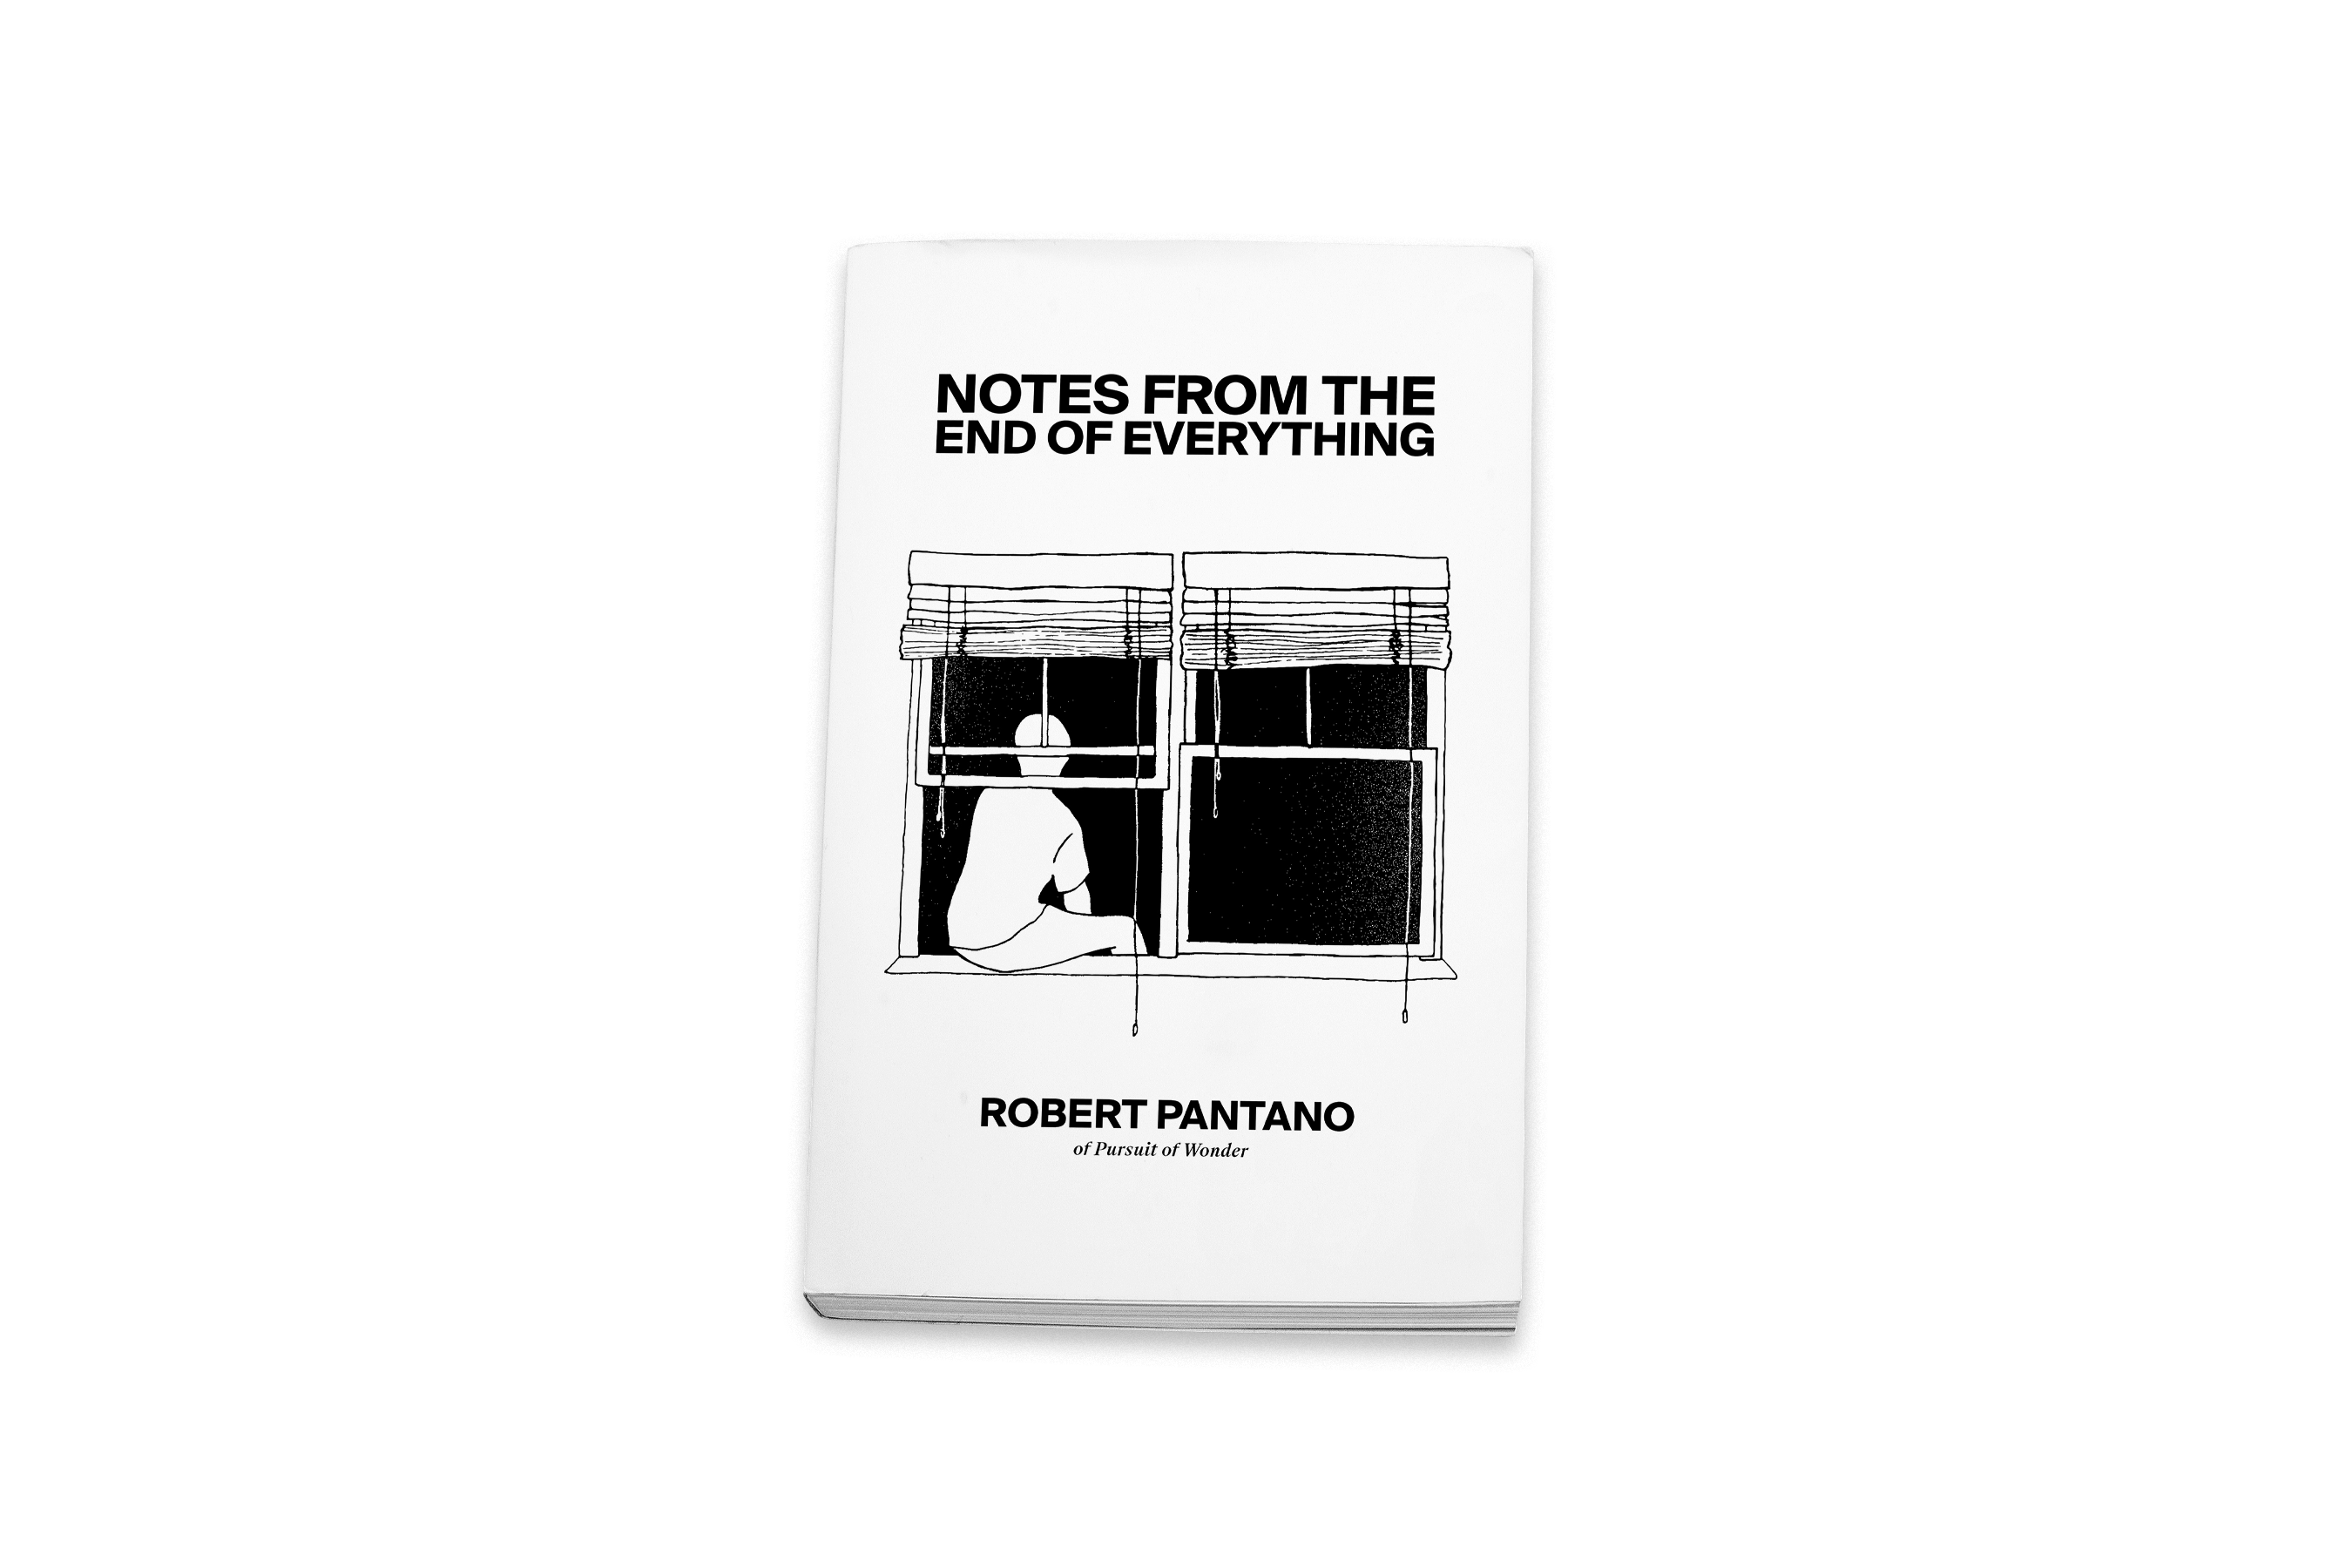 The writer and creator of the YouTube channel and production house Pursuit of Wonder brings you his debut book, Notes from the End of Everything.